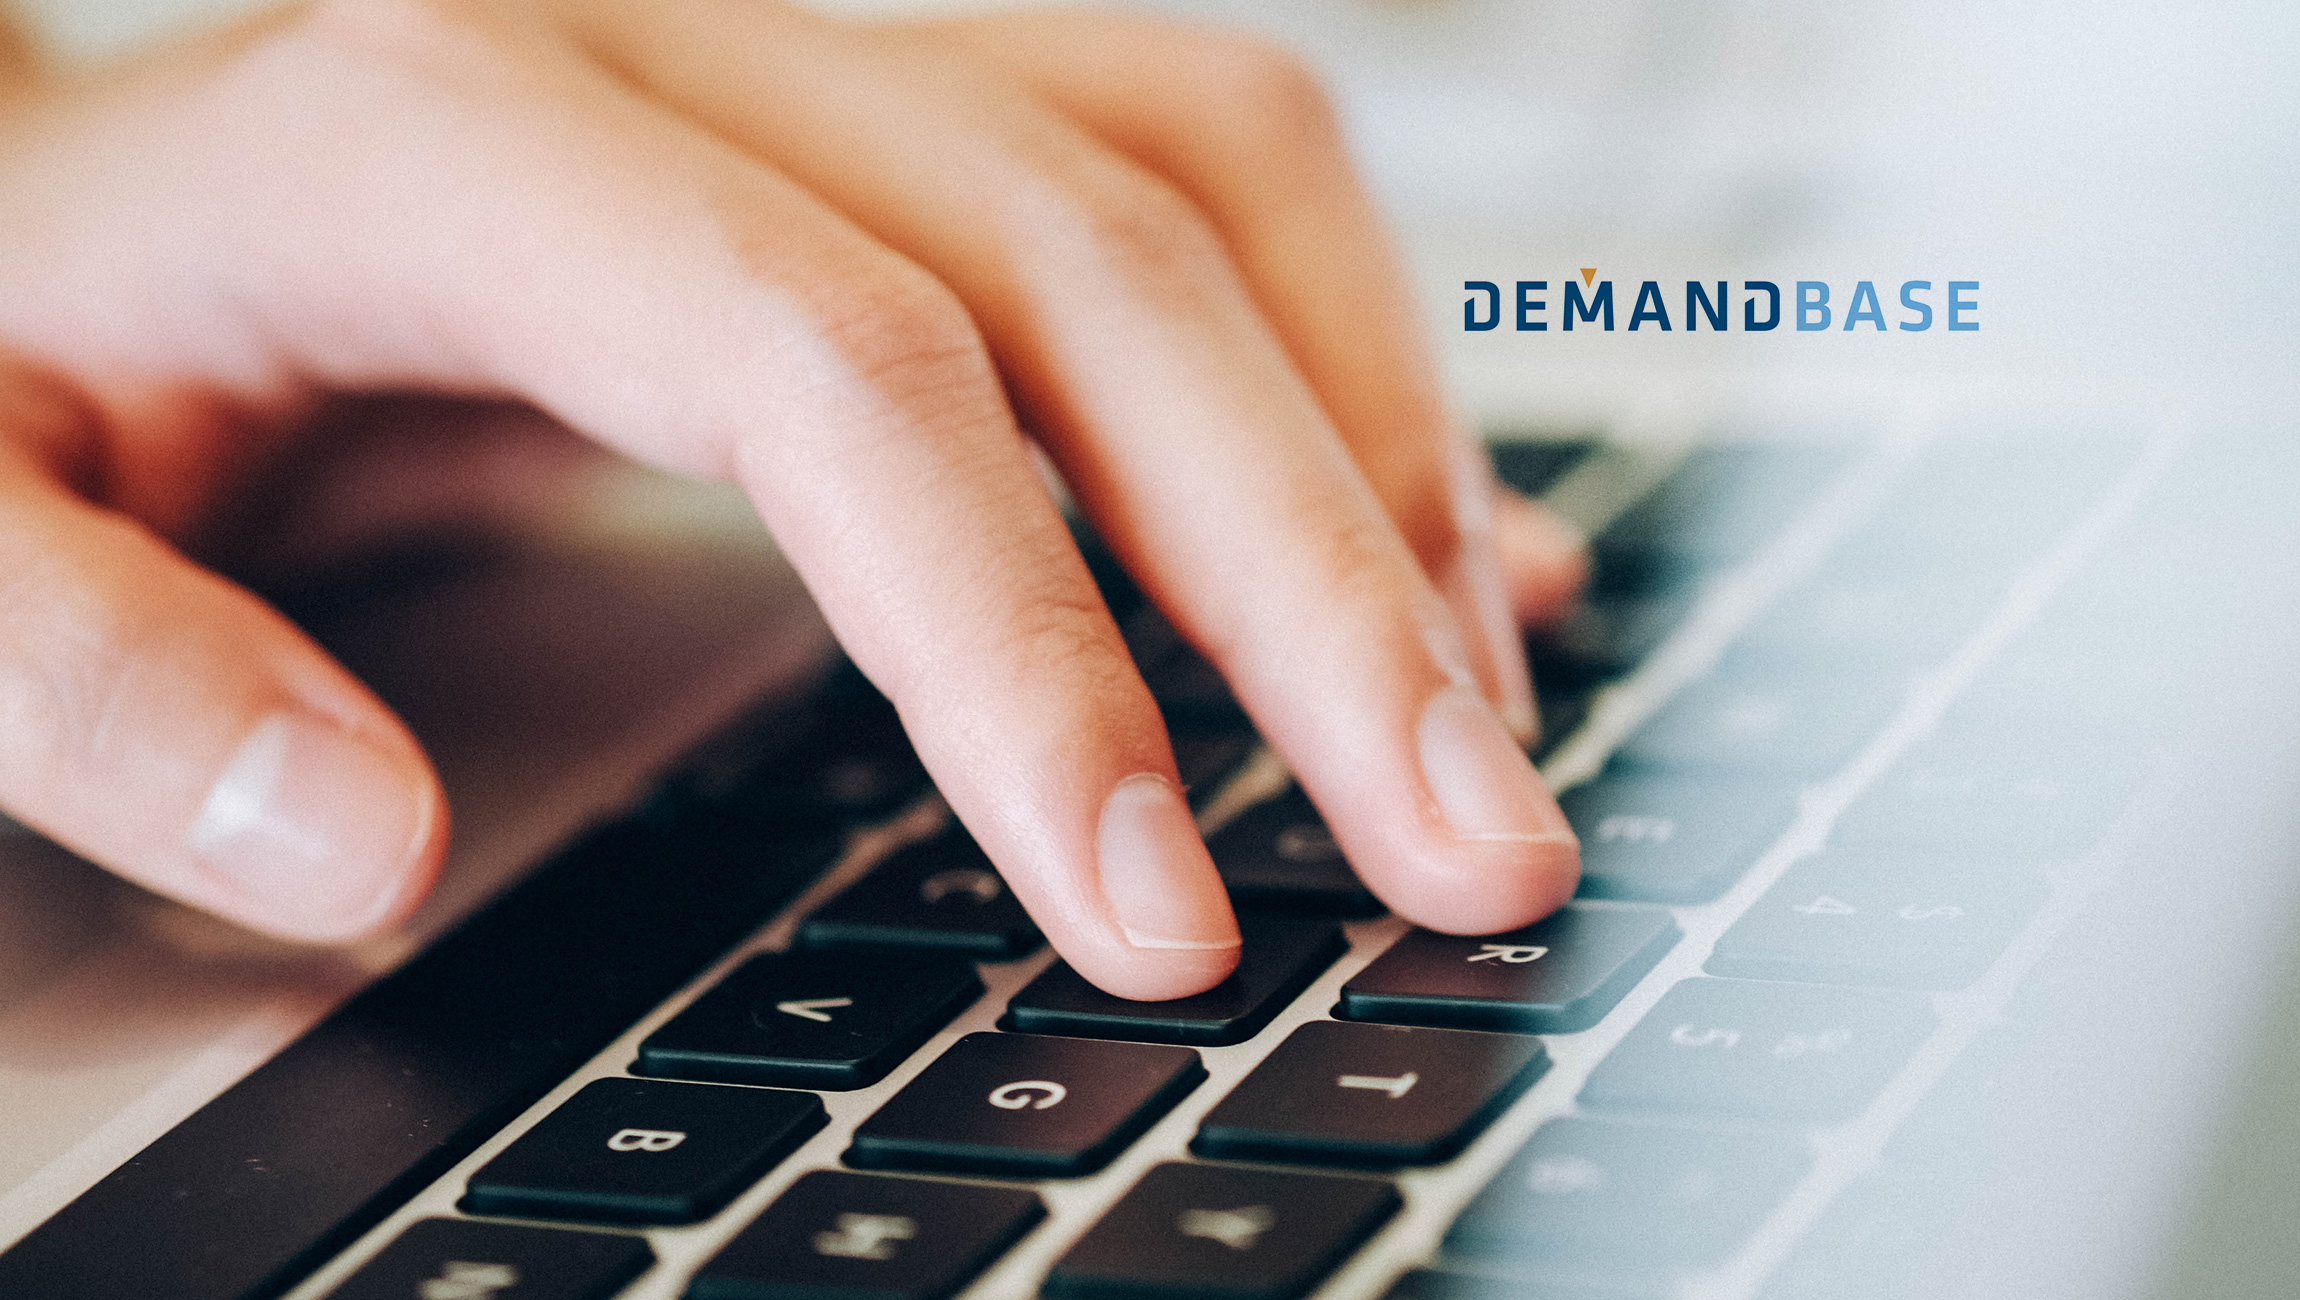 Demandbase Announces Collaboration with Marketo to Enhance Account-Based Marketing Campaigns